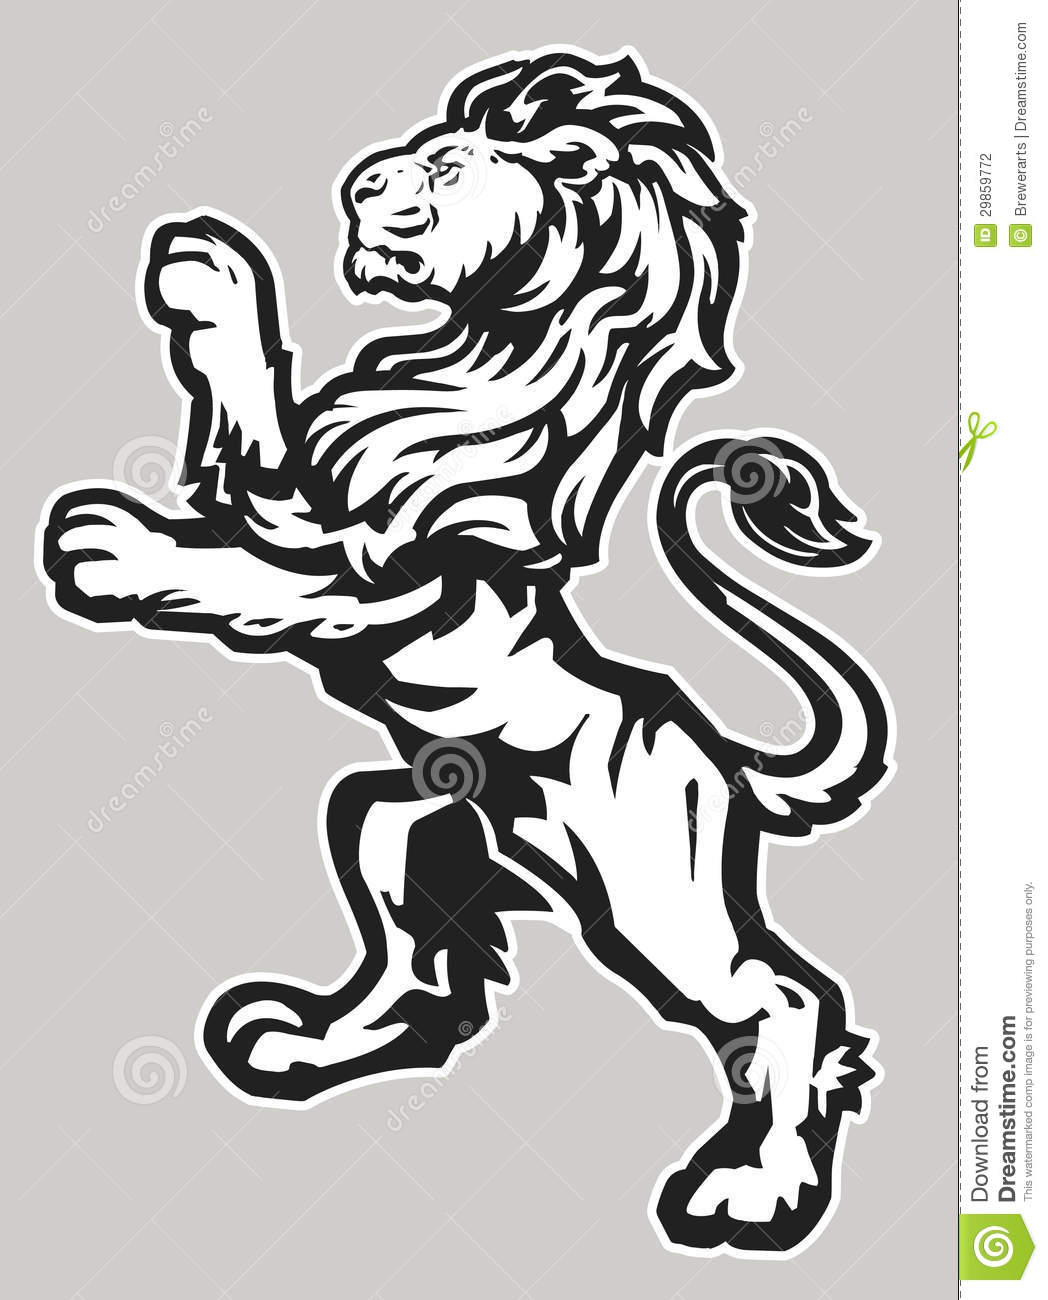 Standing Proud Lion Stock Photography - Image: 29859772